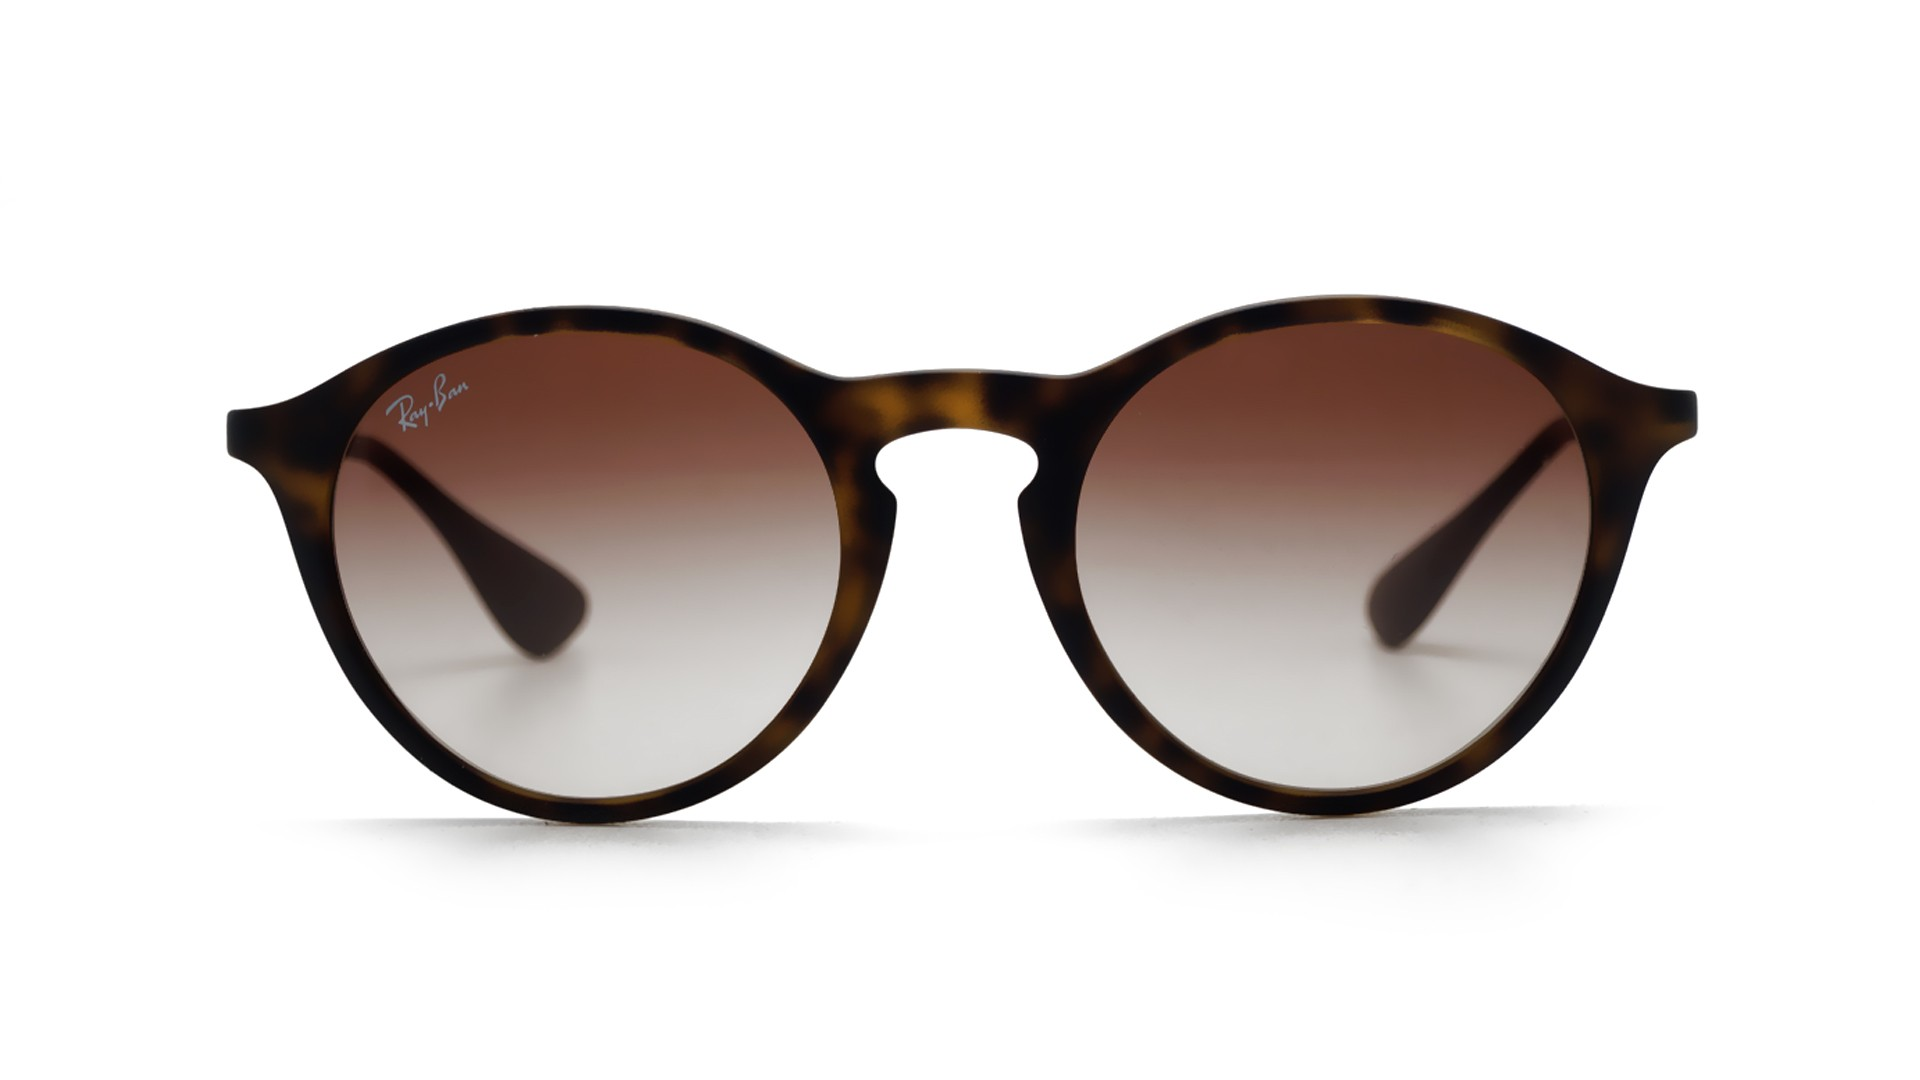 38f17cad42 Ray-Ban RB4243 865 13 49-20 Brown